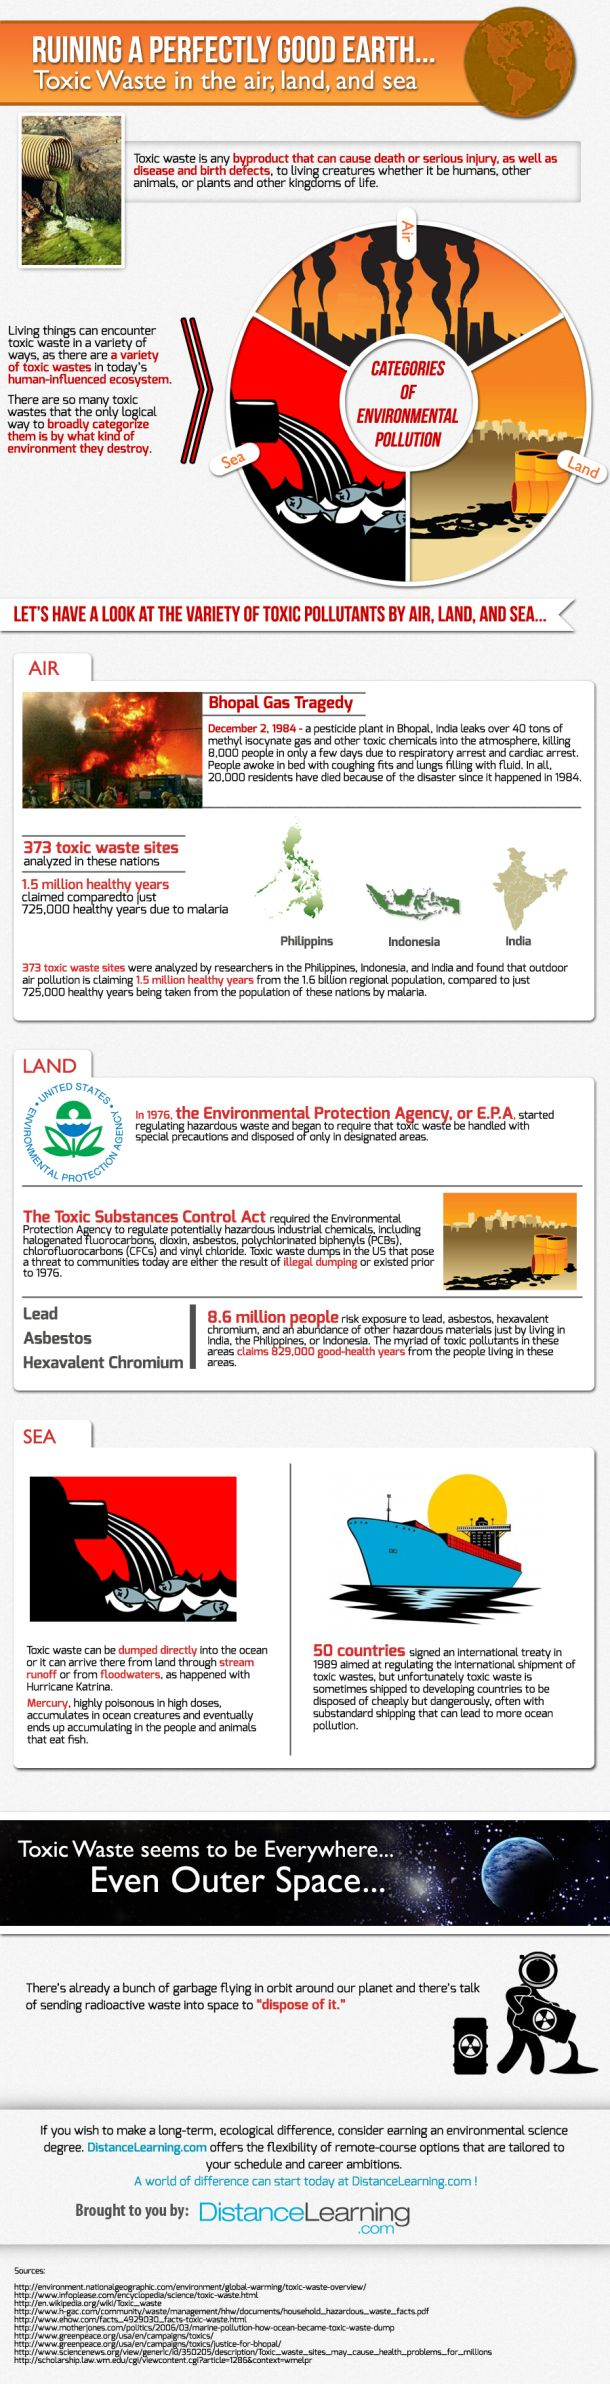 Ruining A Perfectly Good Earth…. Toxic Waste In The Air, Land And Sea[INFOGRAPHIC]